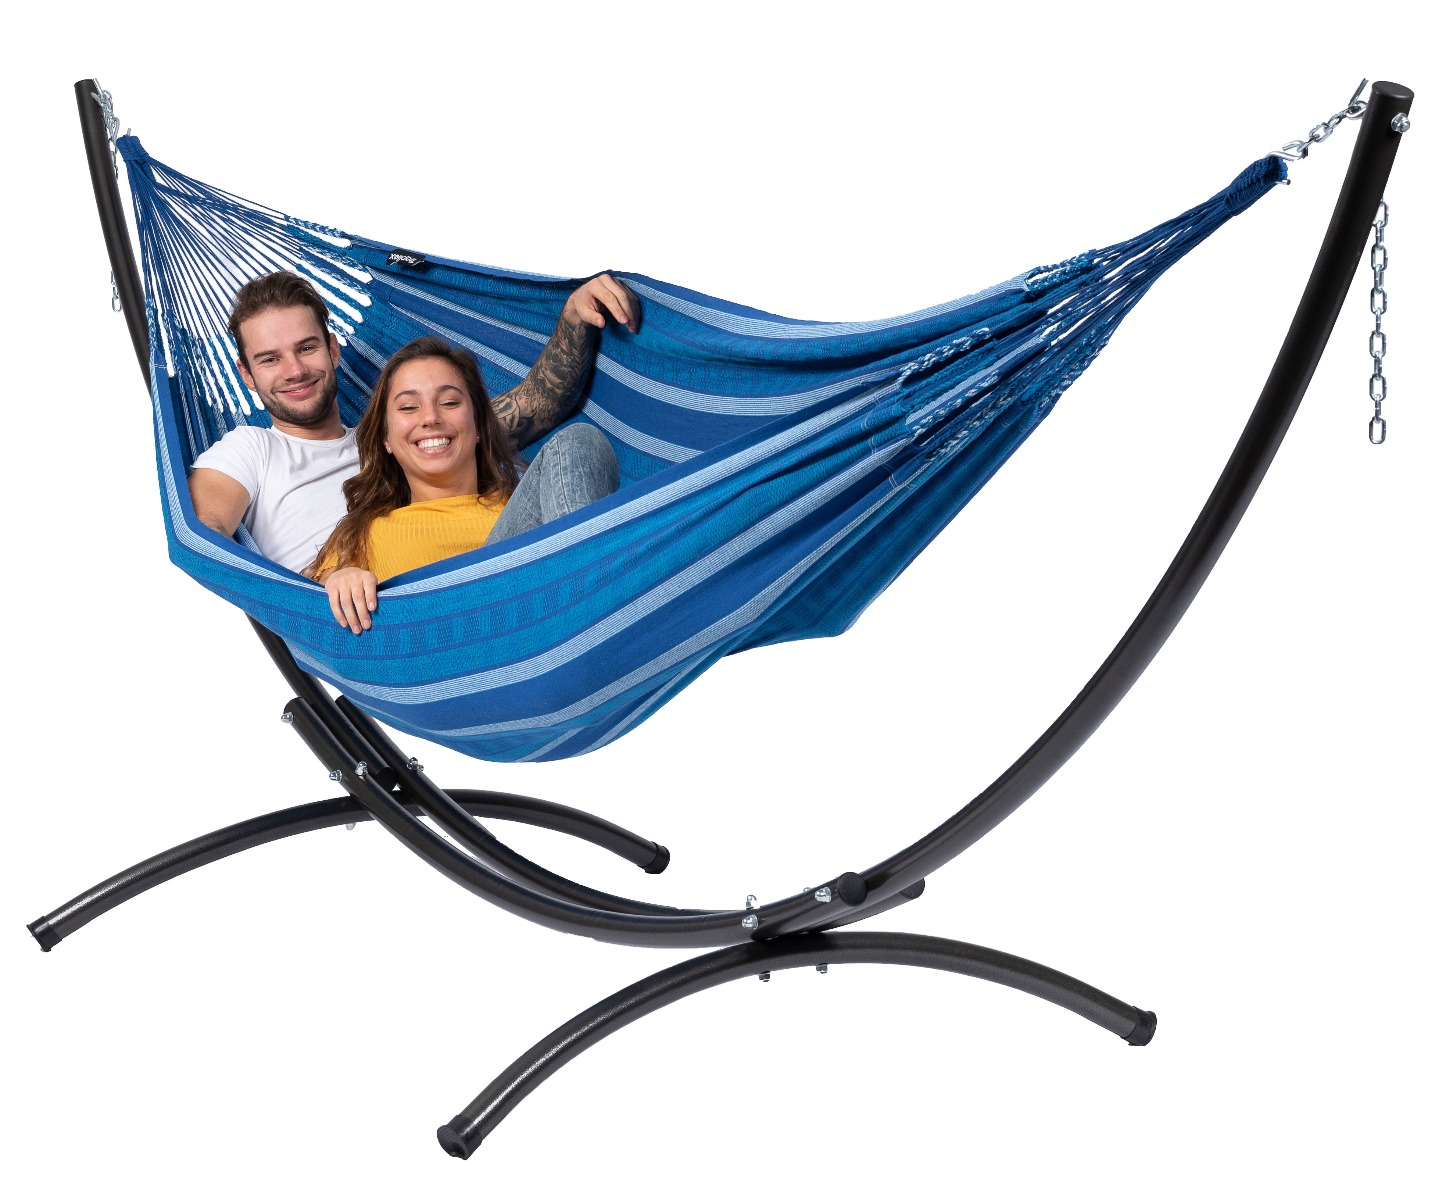 Hangmatset Double 'Arc & Chill' Calm - Tropilex �